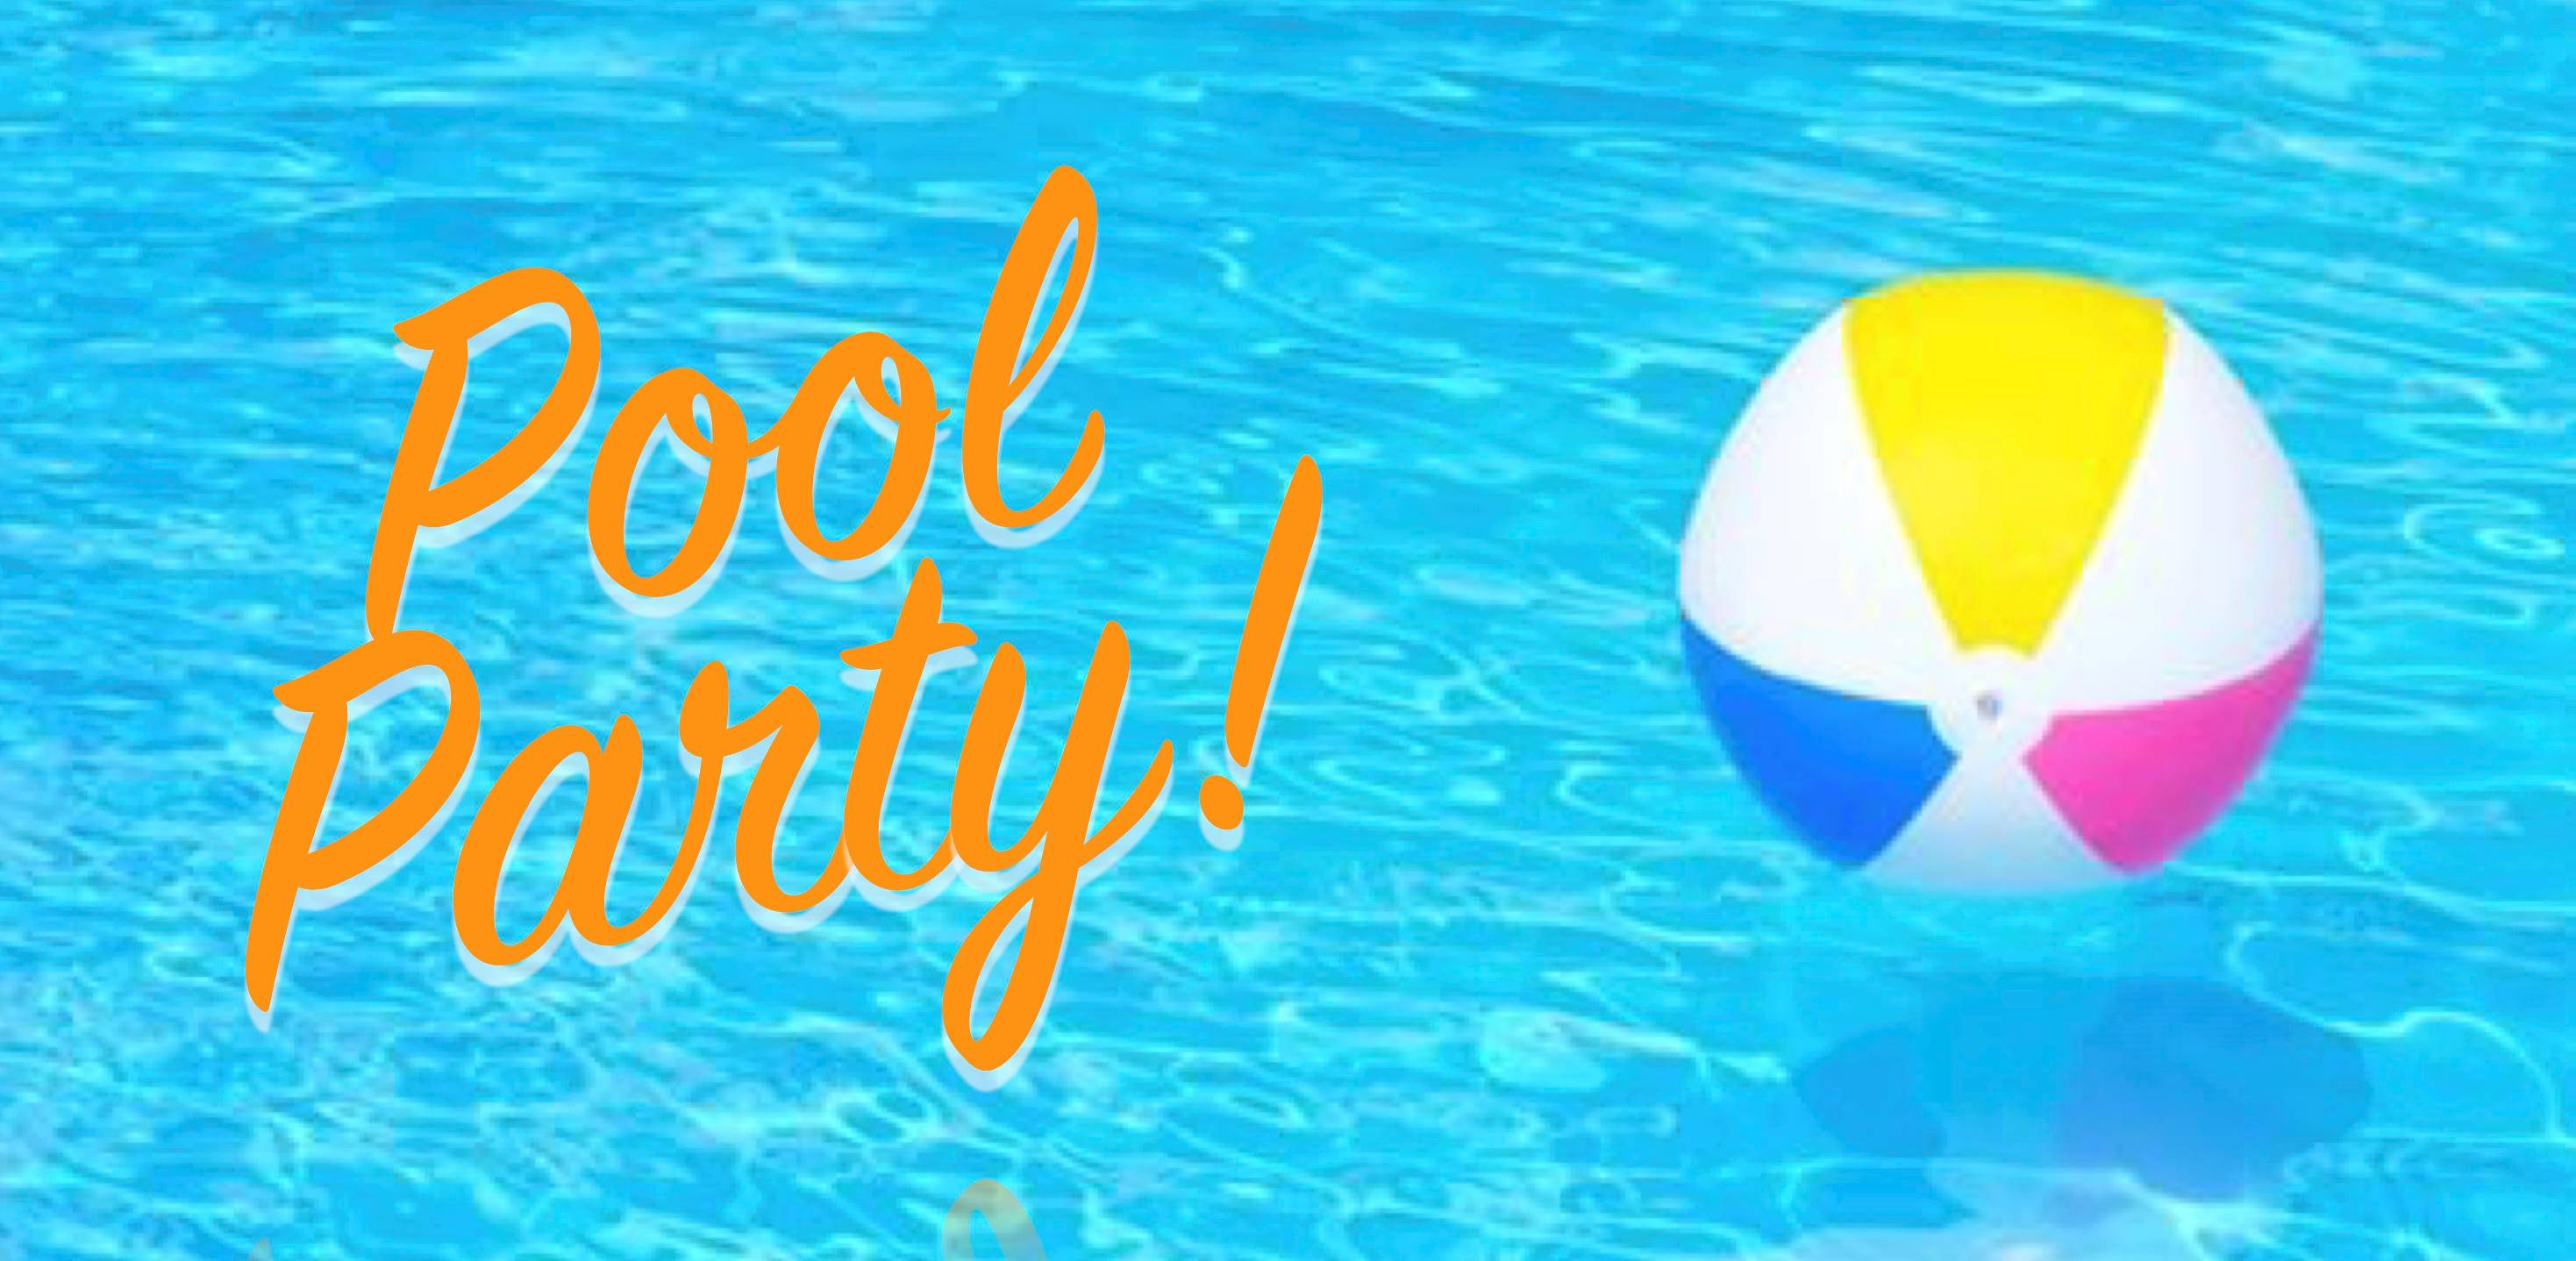 Pool Party July 30th! – Heritage Lake Association